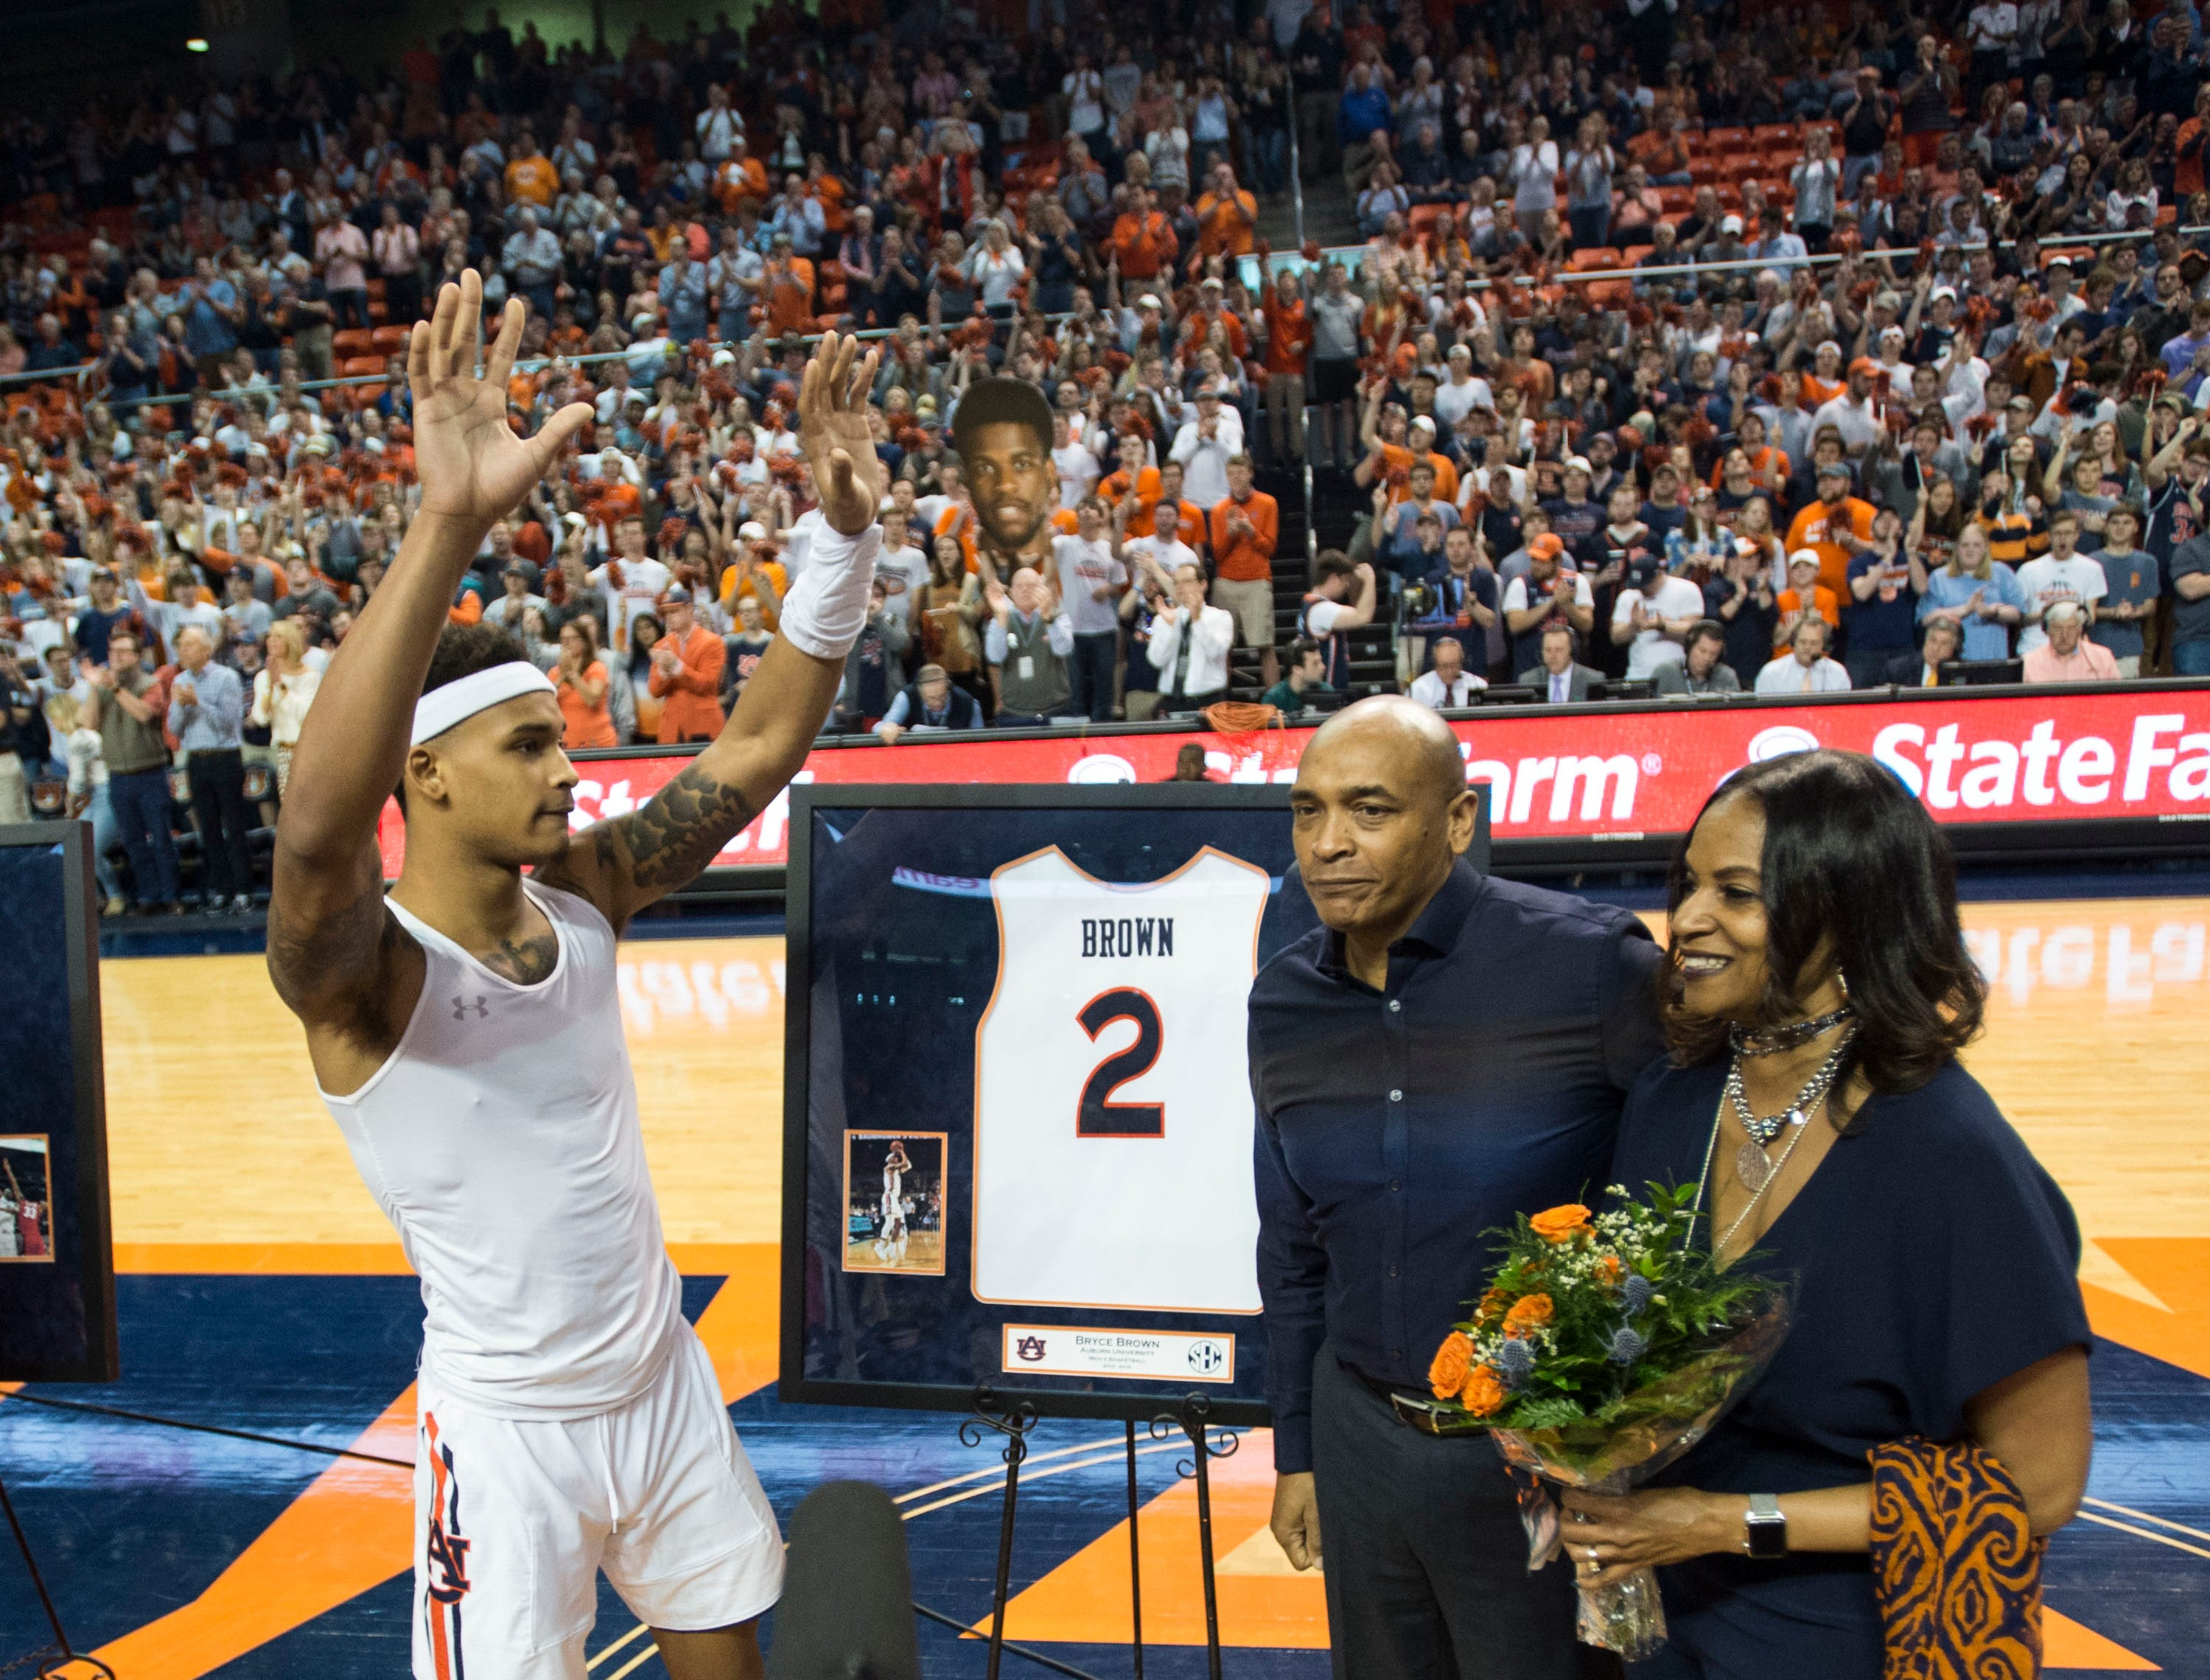 Auburn guard Bryce Brown (2) acknowledges the crowd during a senior day celebration at Auburn Arena in Auburn, Ala., on Saturday, March 9, 2019. Tennessee leads Auburn 41-35 at halftime.